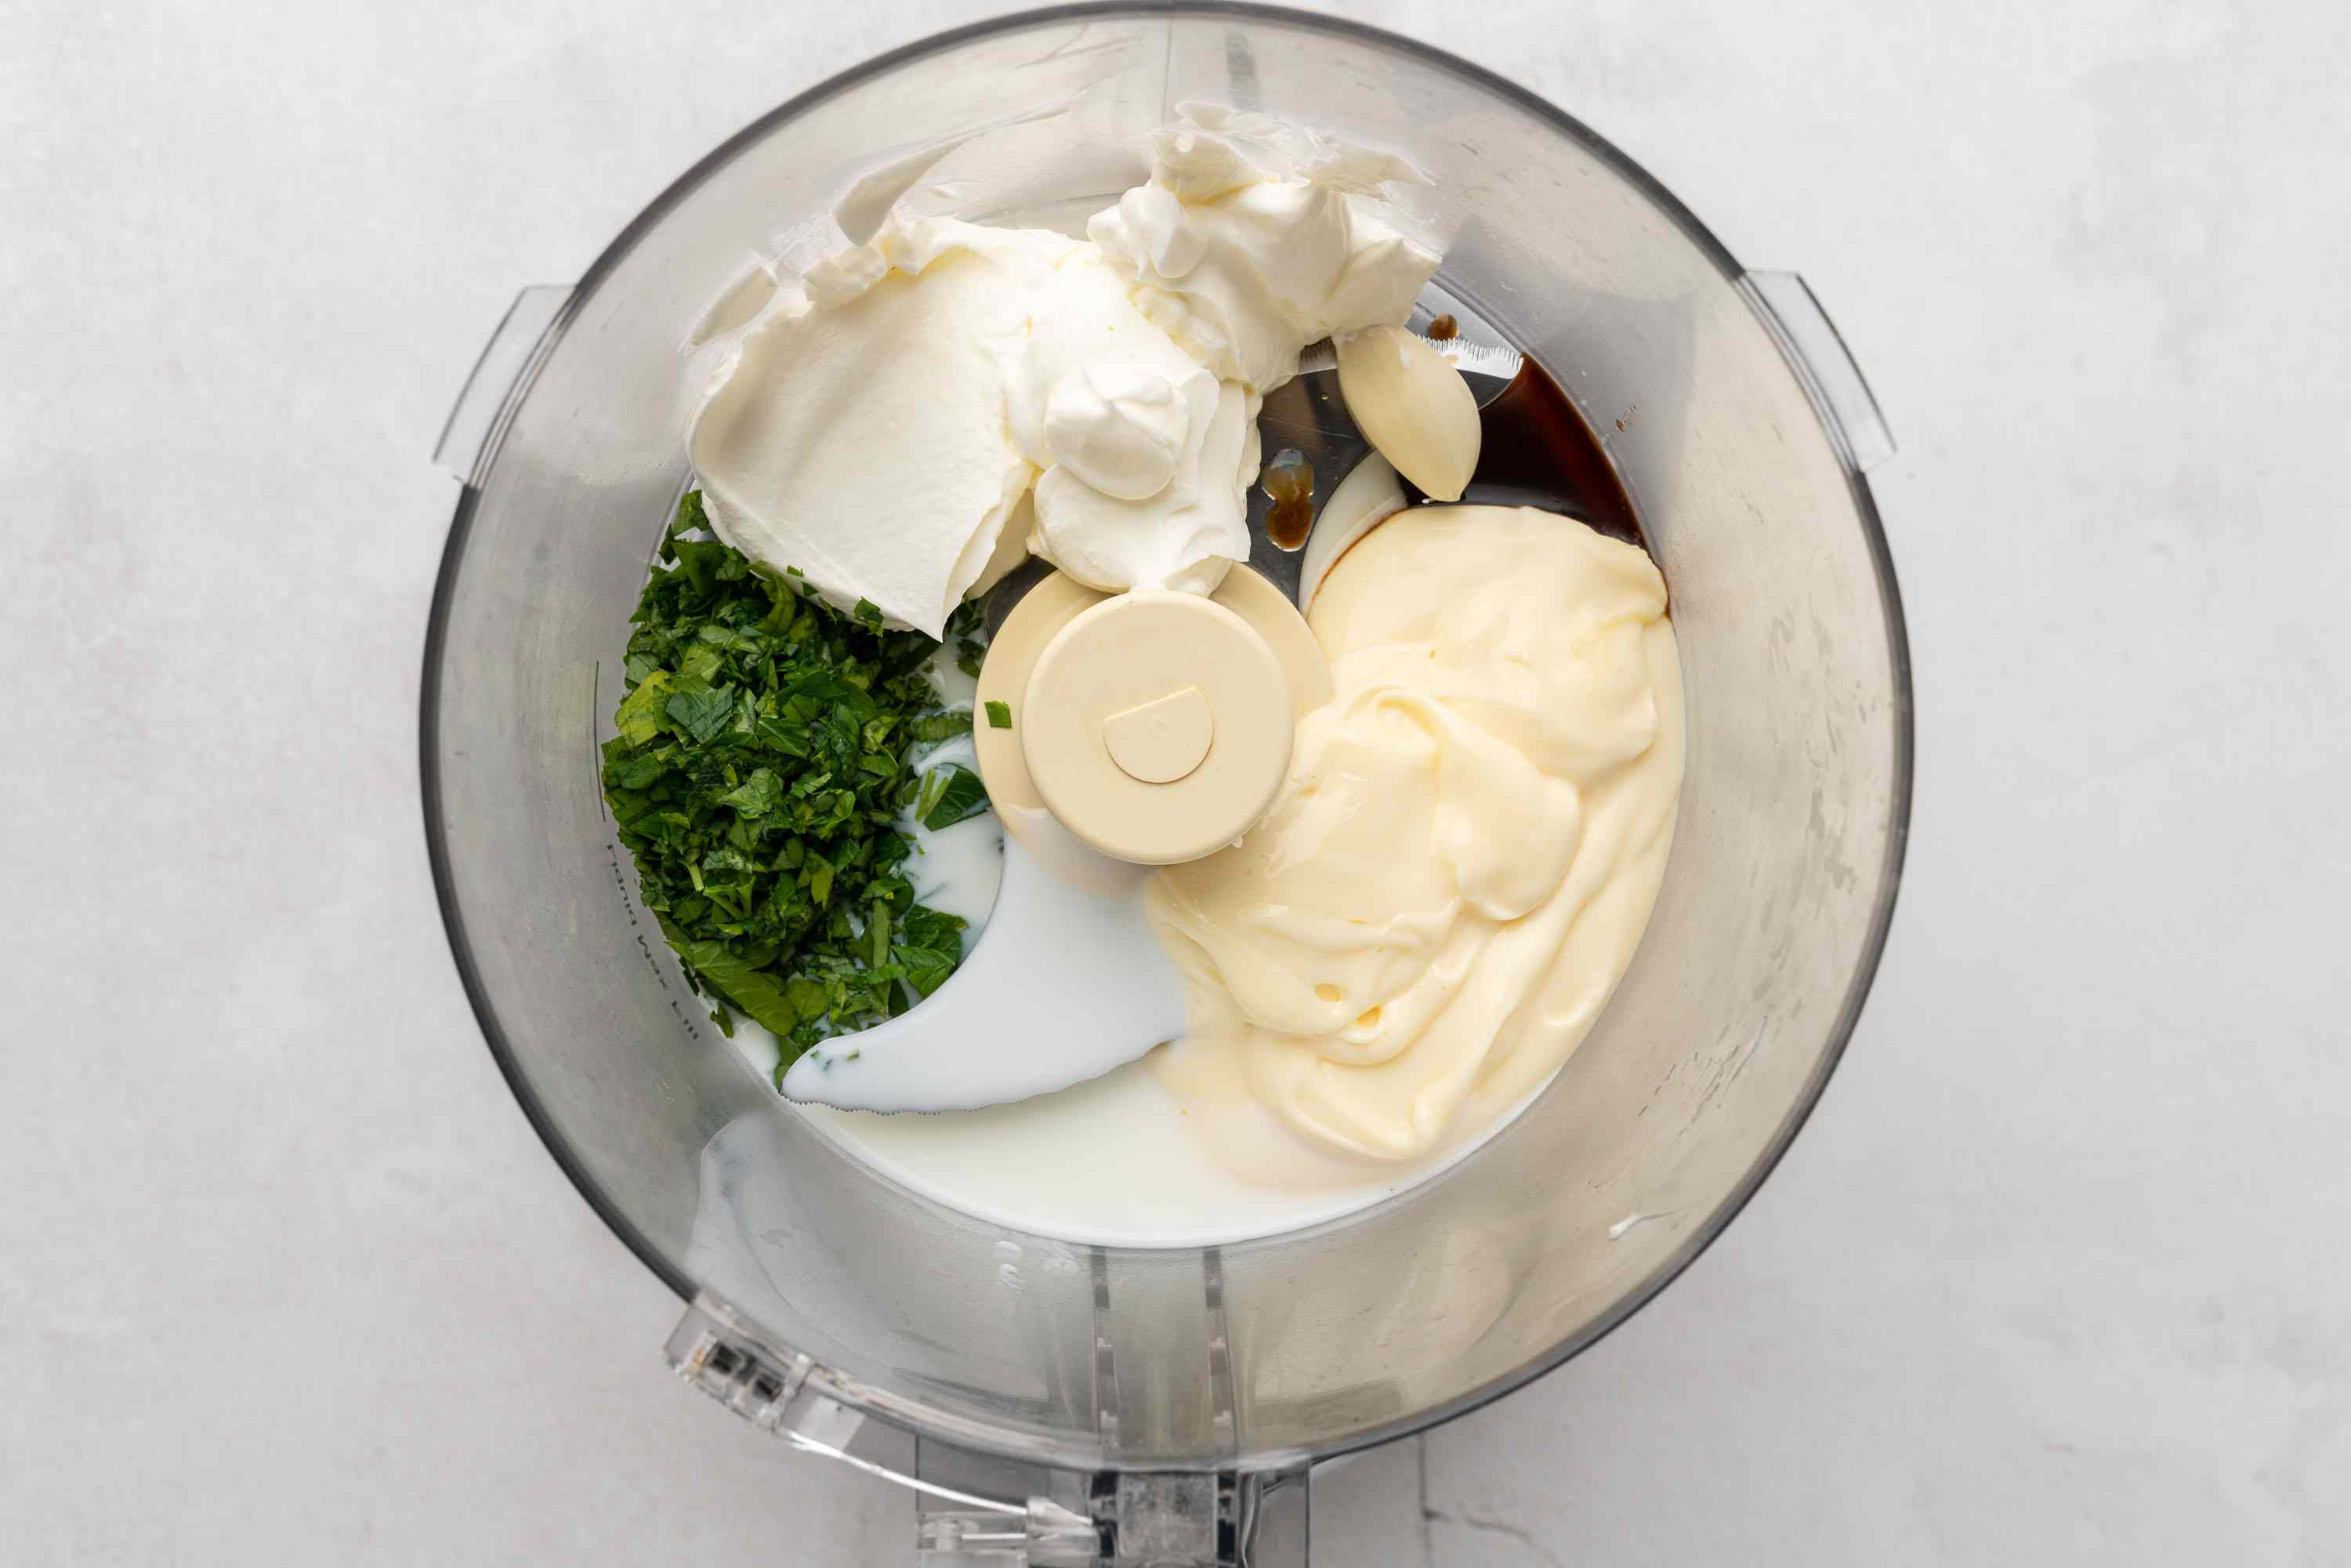 mayonnaise, sour cream, parsley, Worcestershire sauce, buttermilk, lemon juice, and garlic in a food processor